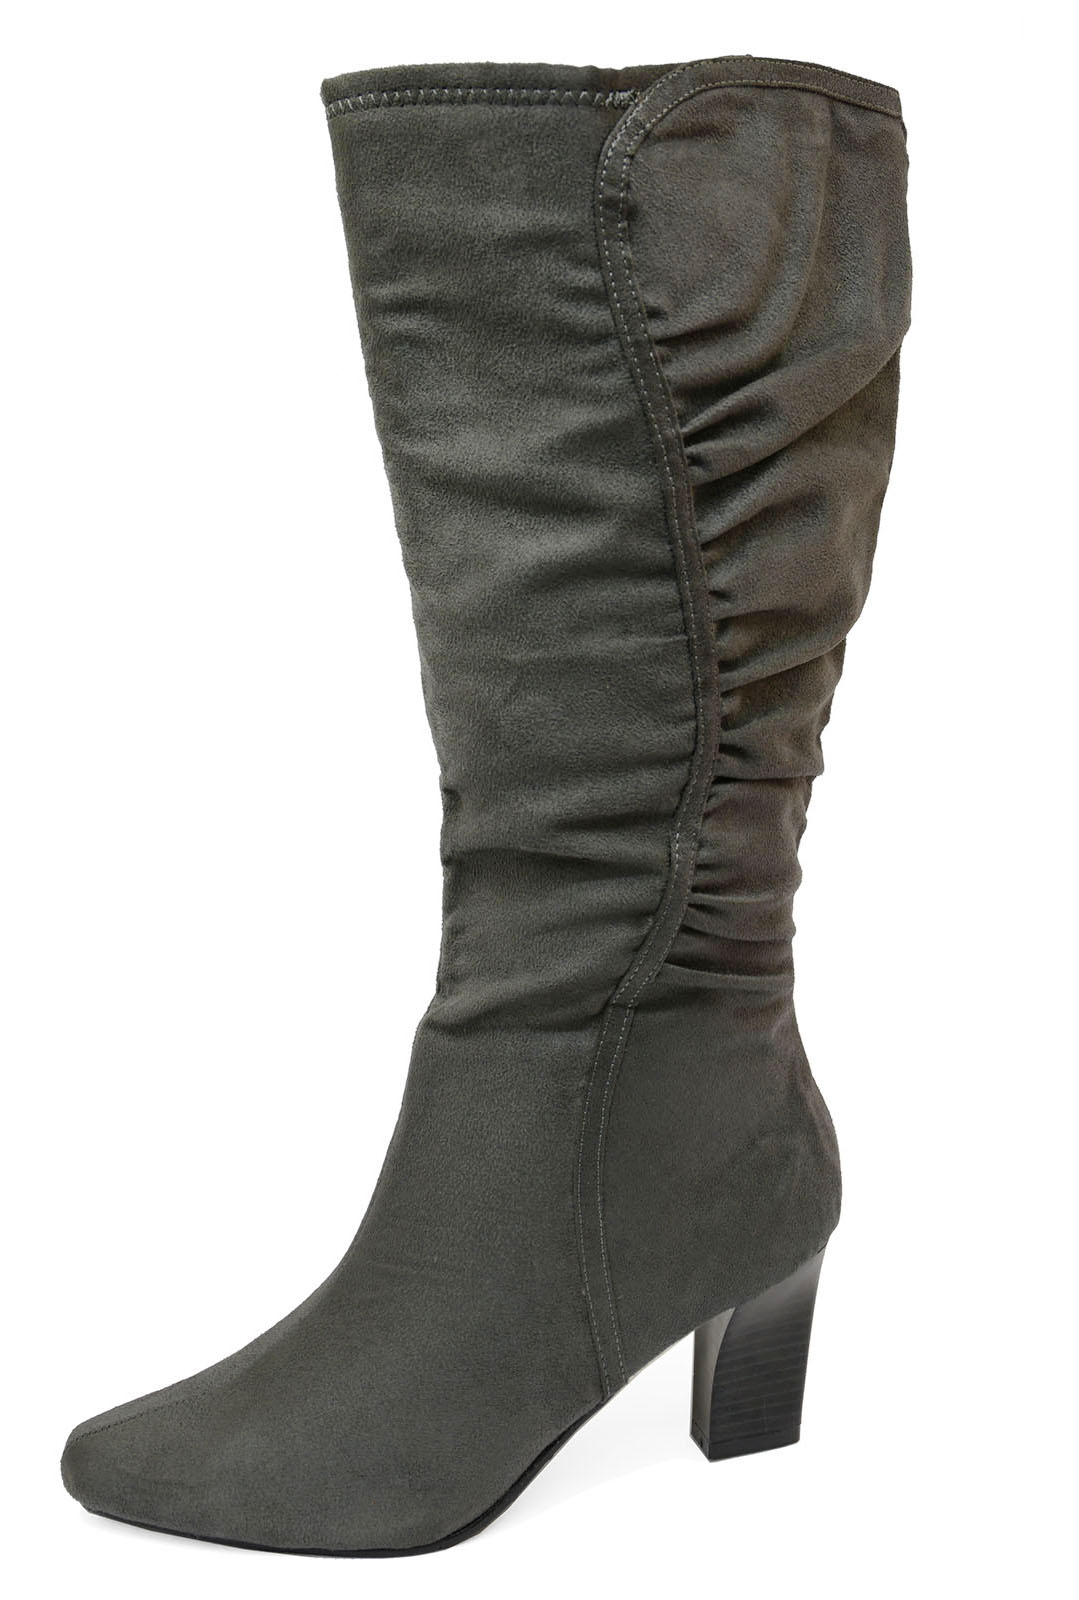 4be6acb8291 Sentinel LADIES GREY WIDE FIT CALF RUCHED BIKER KNEE-HIGH RIDING COWBOY  TALL BOOTS 6-